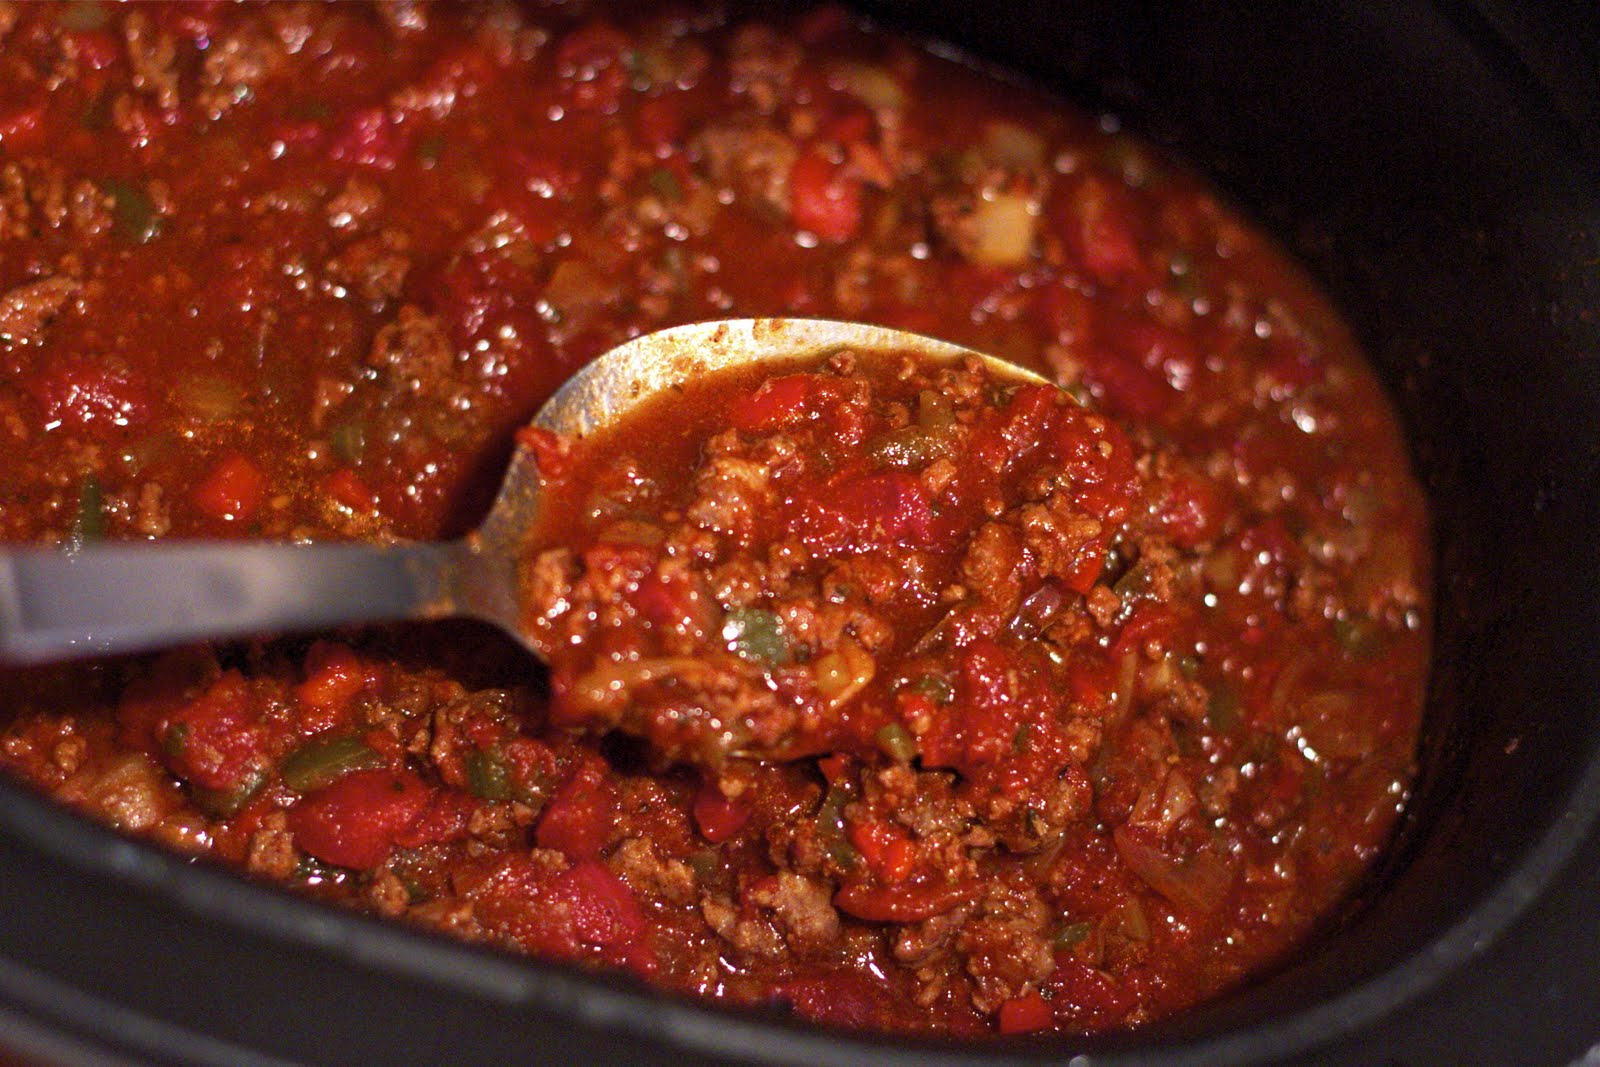 ... and Dine In: Smoky Turkey Chili ~ a slow cooker Weight Watcher recipe